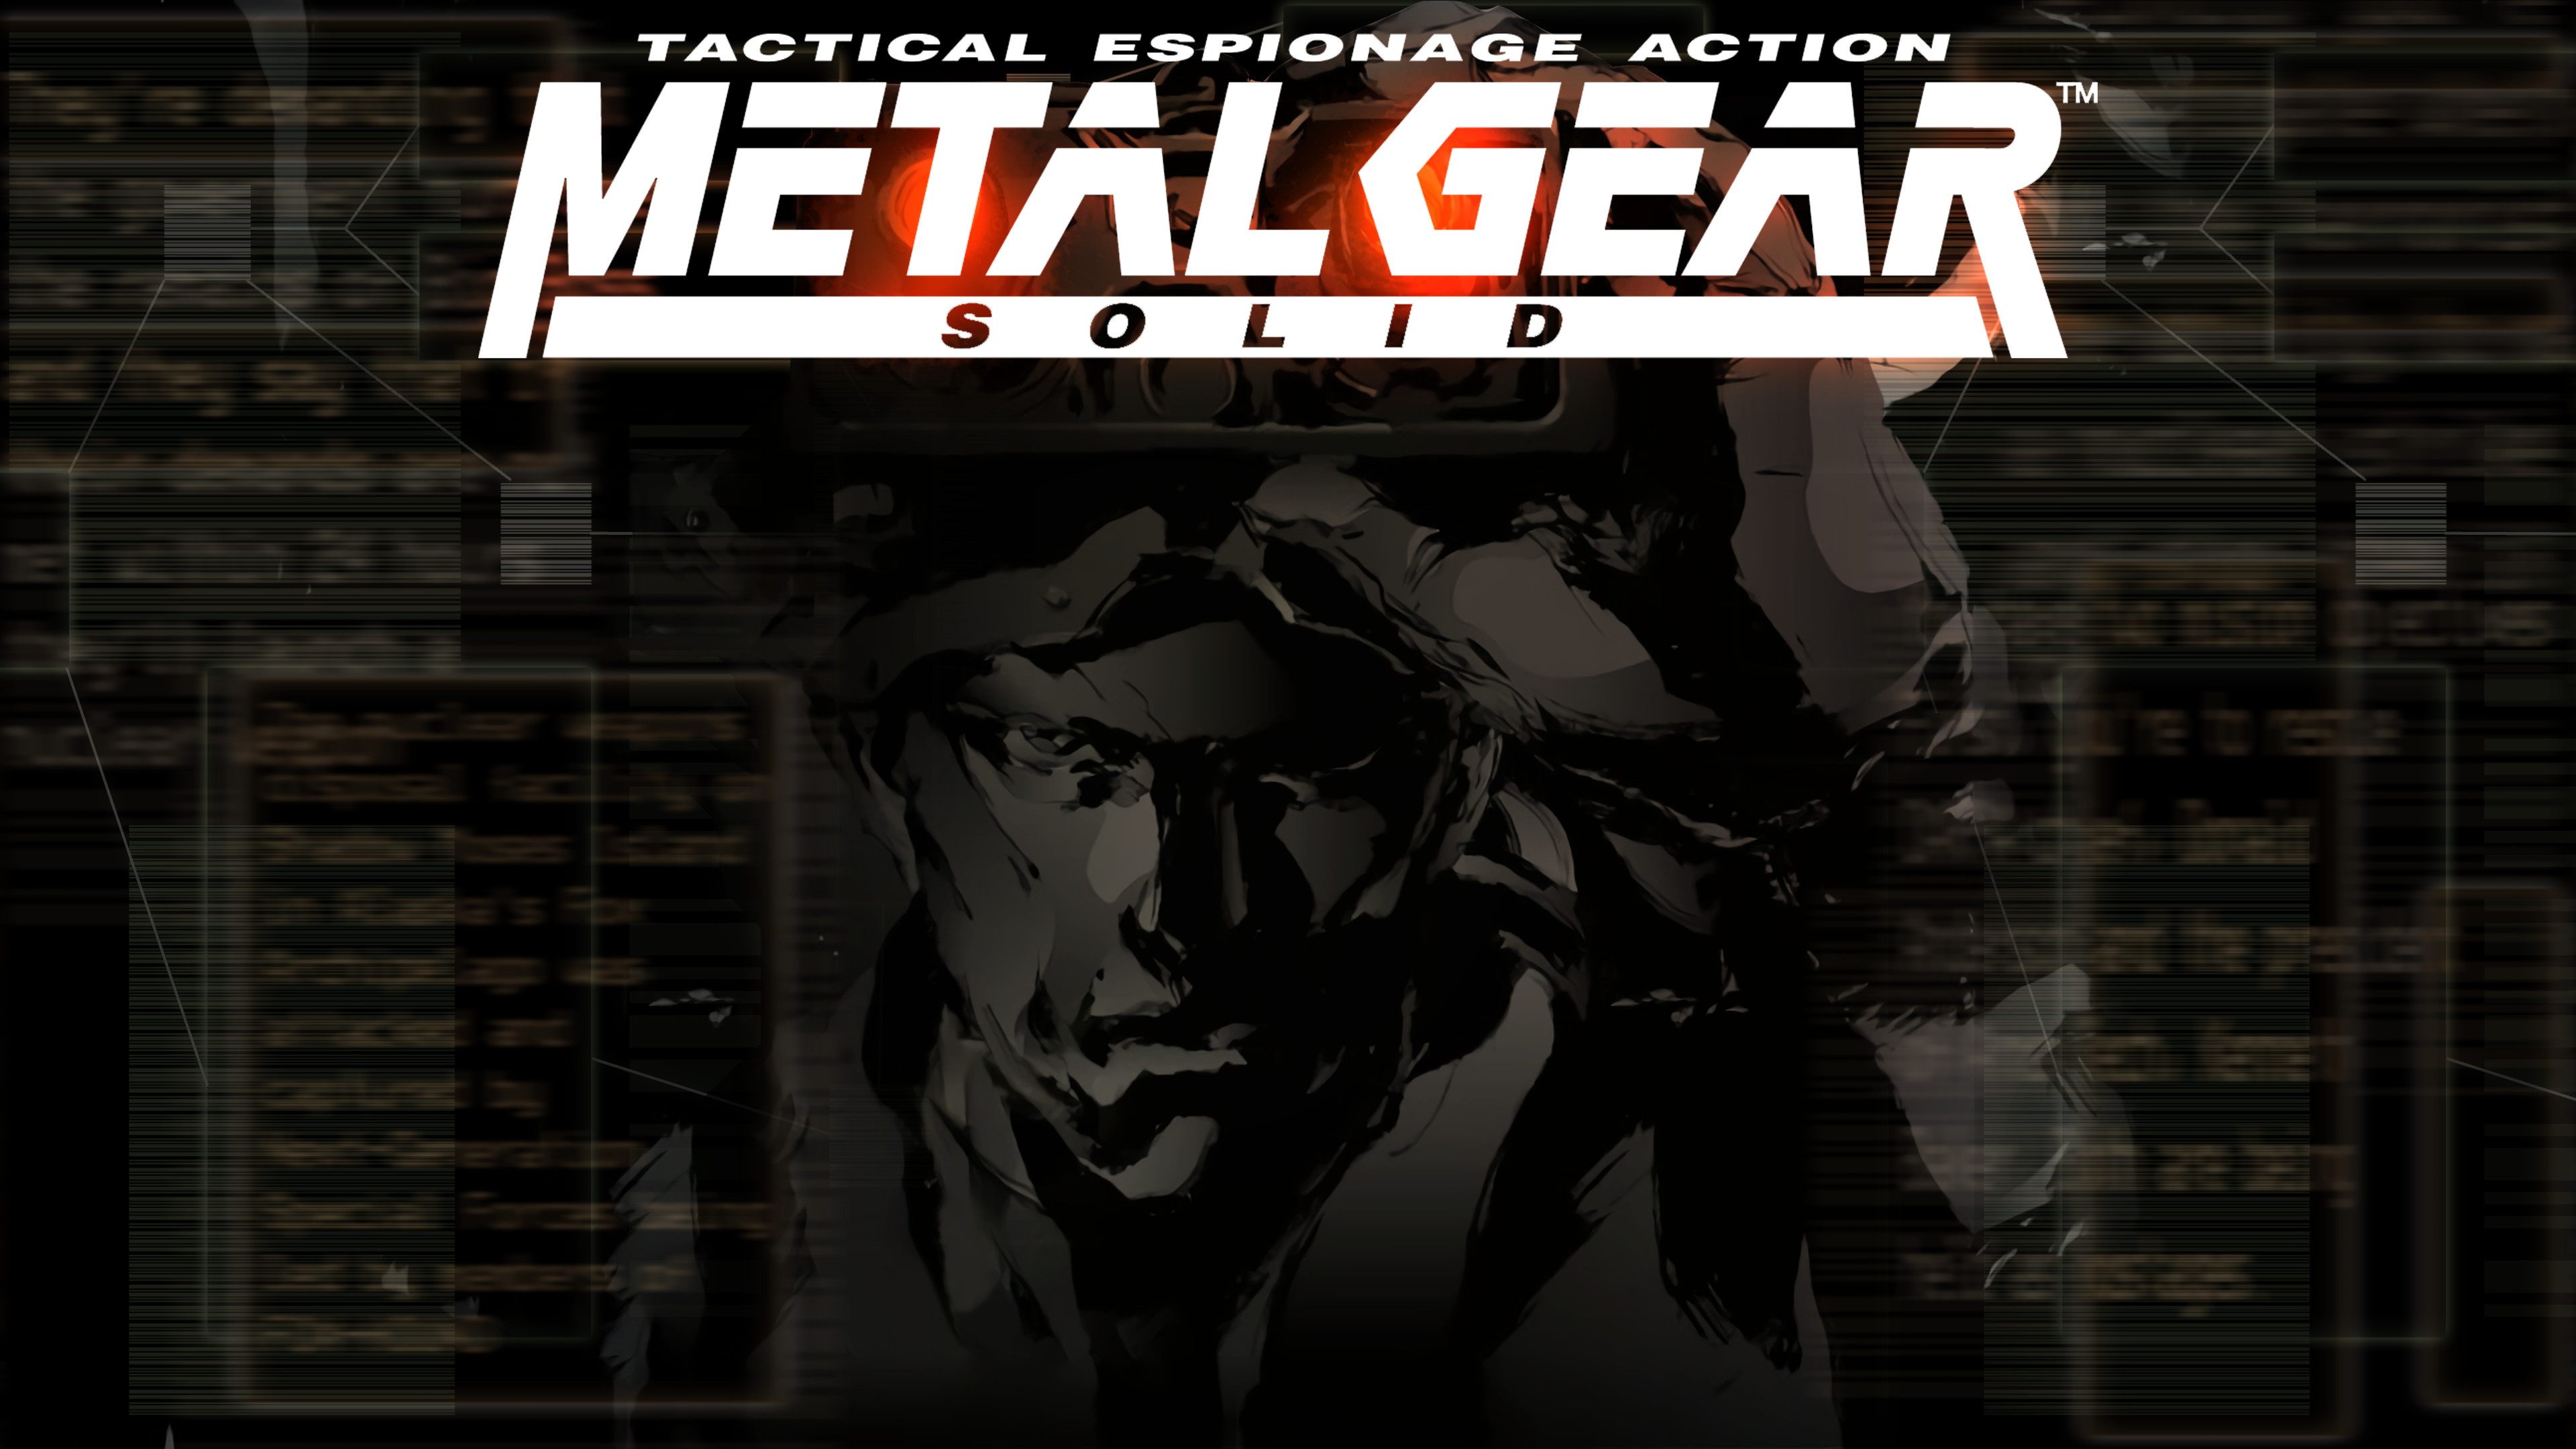 Metal Gear Solid Wallpaper 1080p (76+ Images